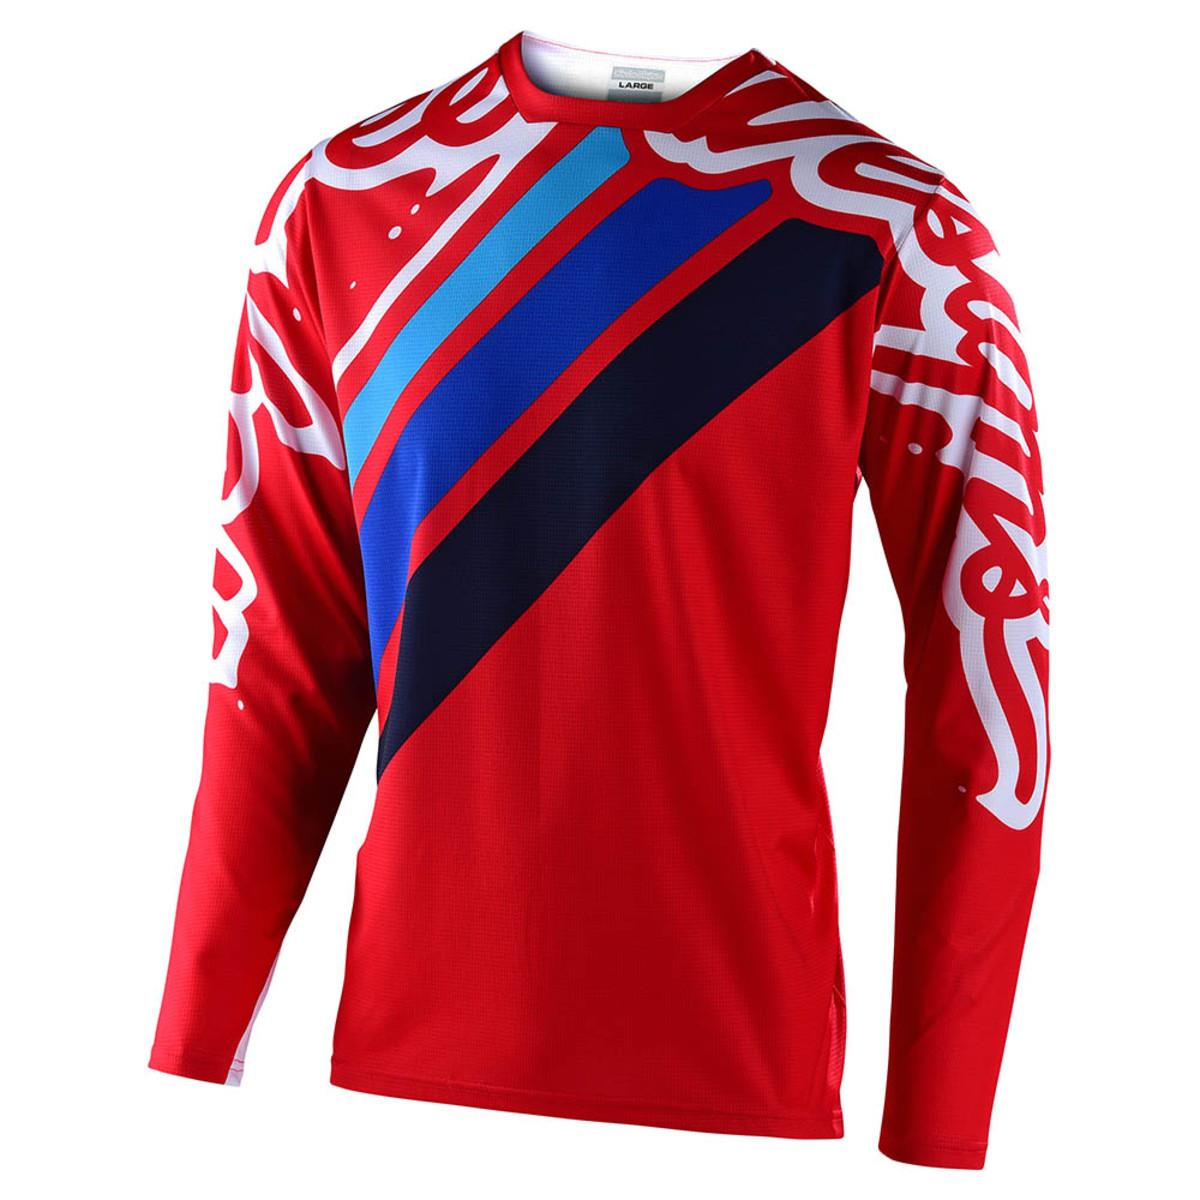 Troy Lee Sprint Seca 2.0 Race Jersey - Red/Navy